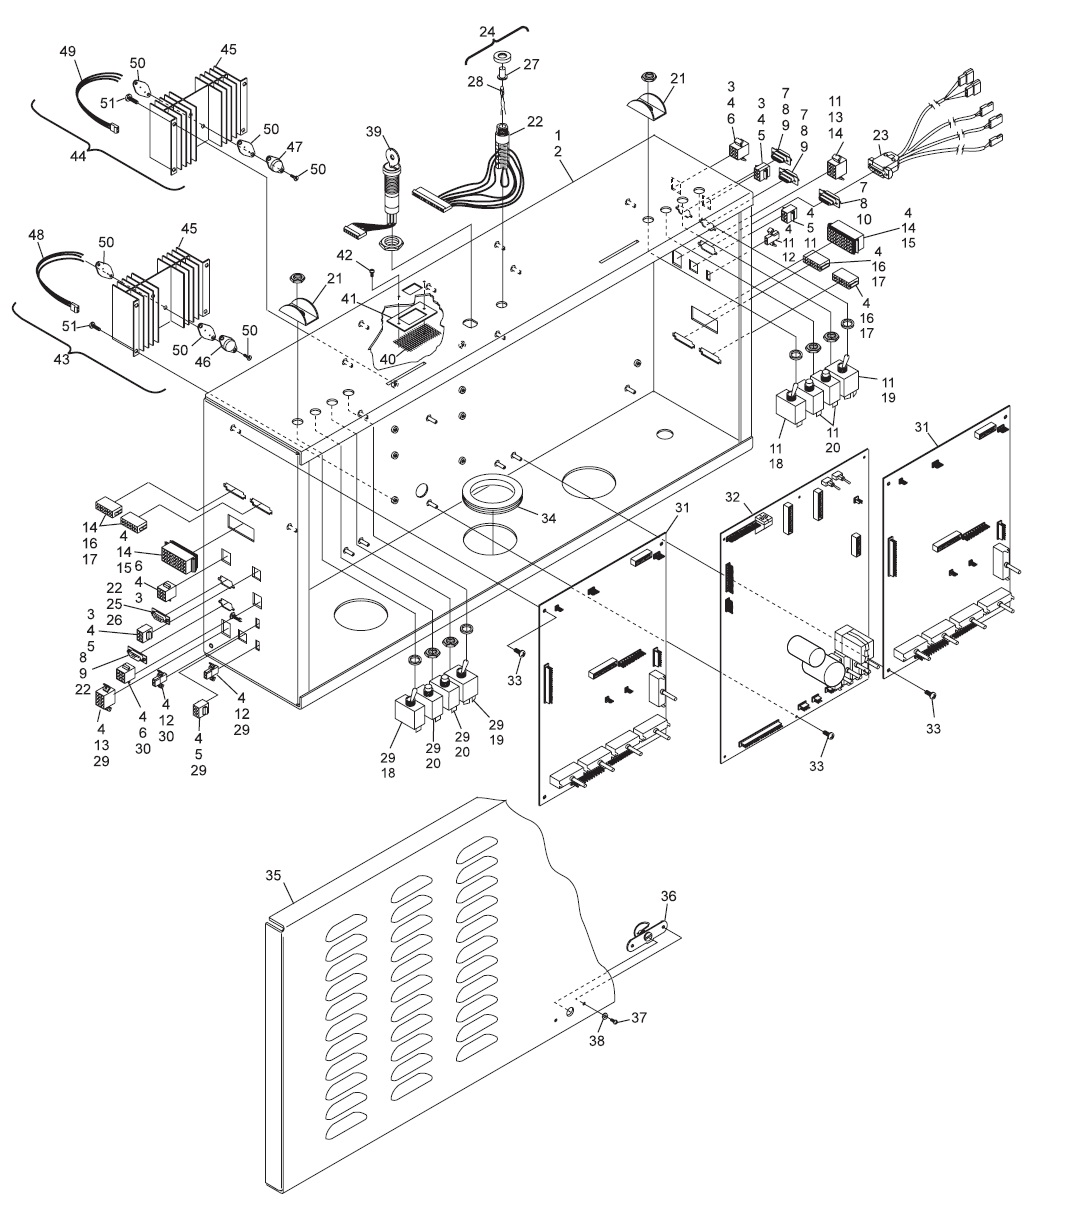 GS Consolidated Electronics Low Voltage Box Assembly